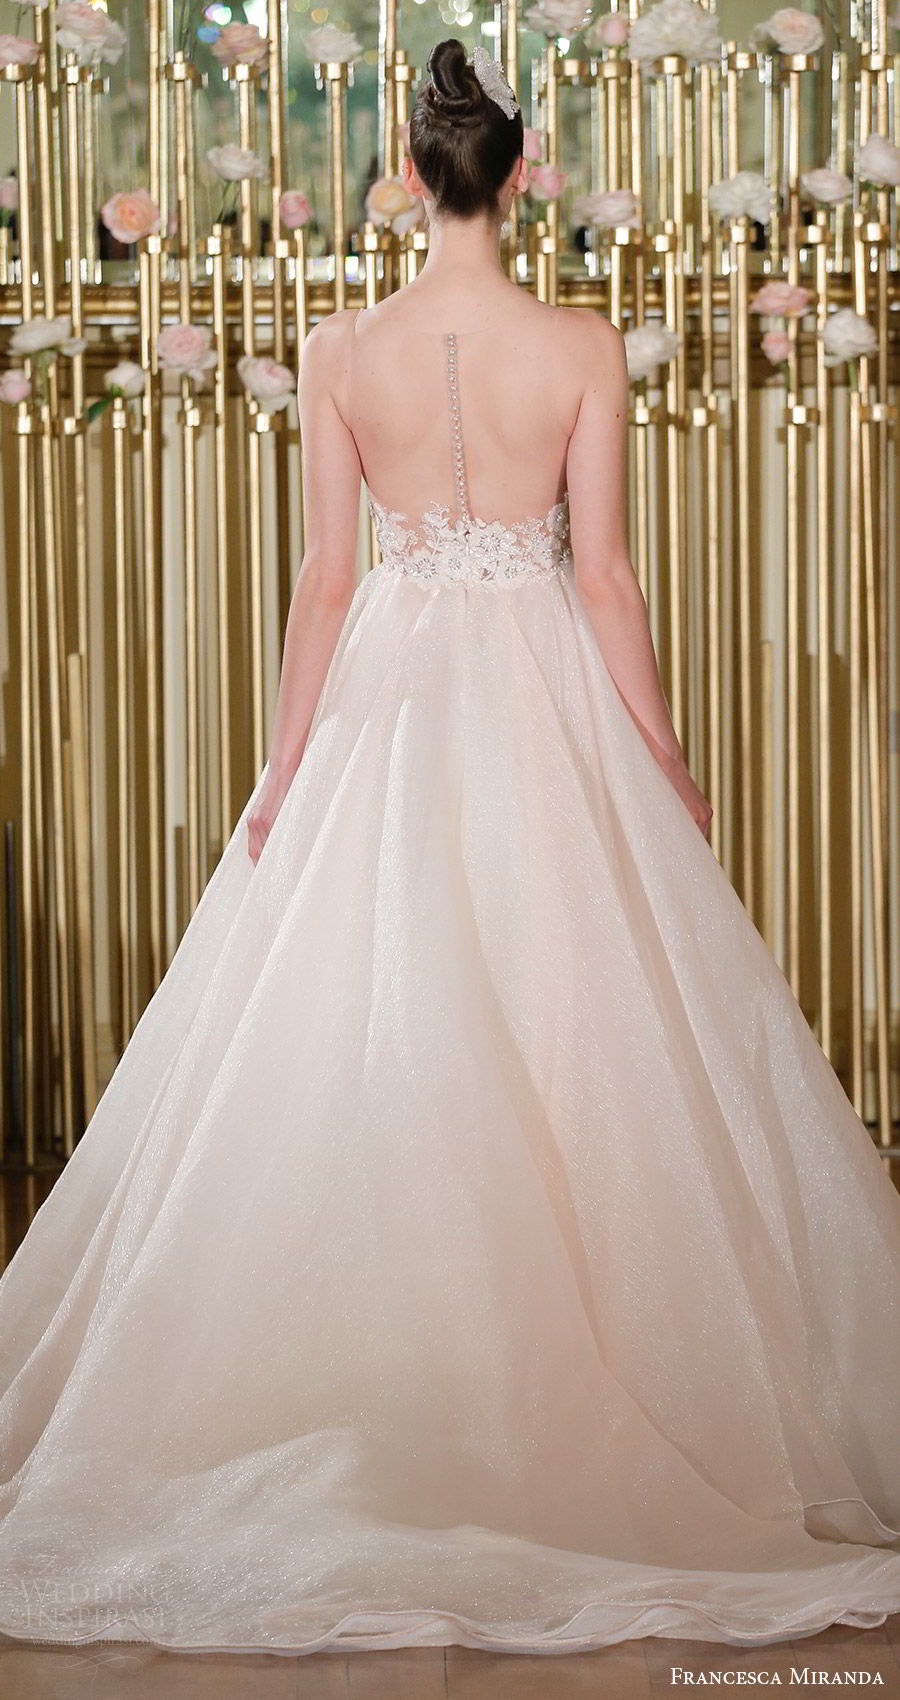 francesca miranda spring 2018 bridal sleeveless sweetheart embroidered bodice ball gown wedding dress (amelie) bv short train blush romantic